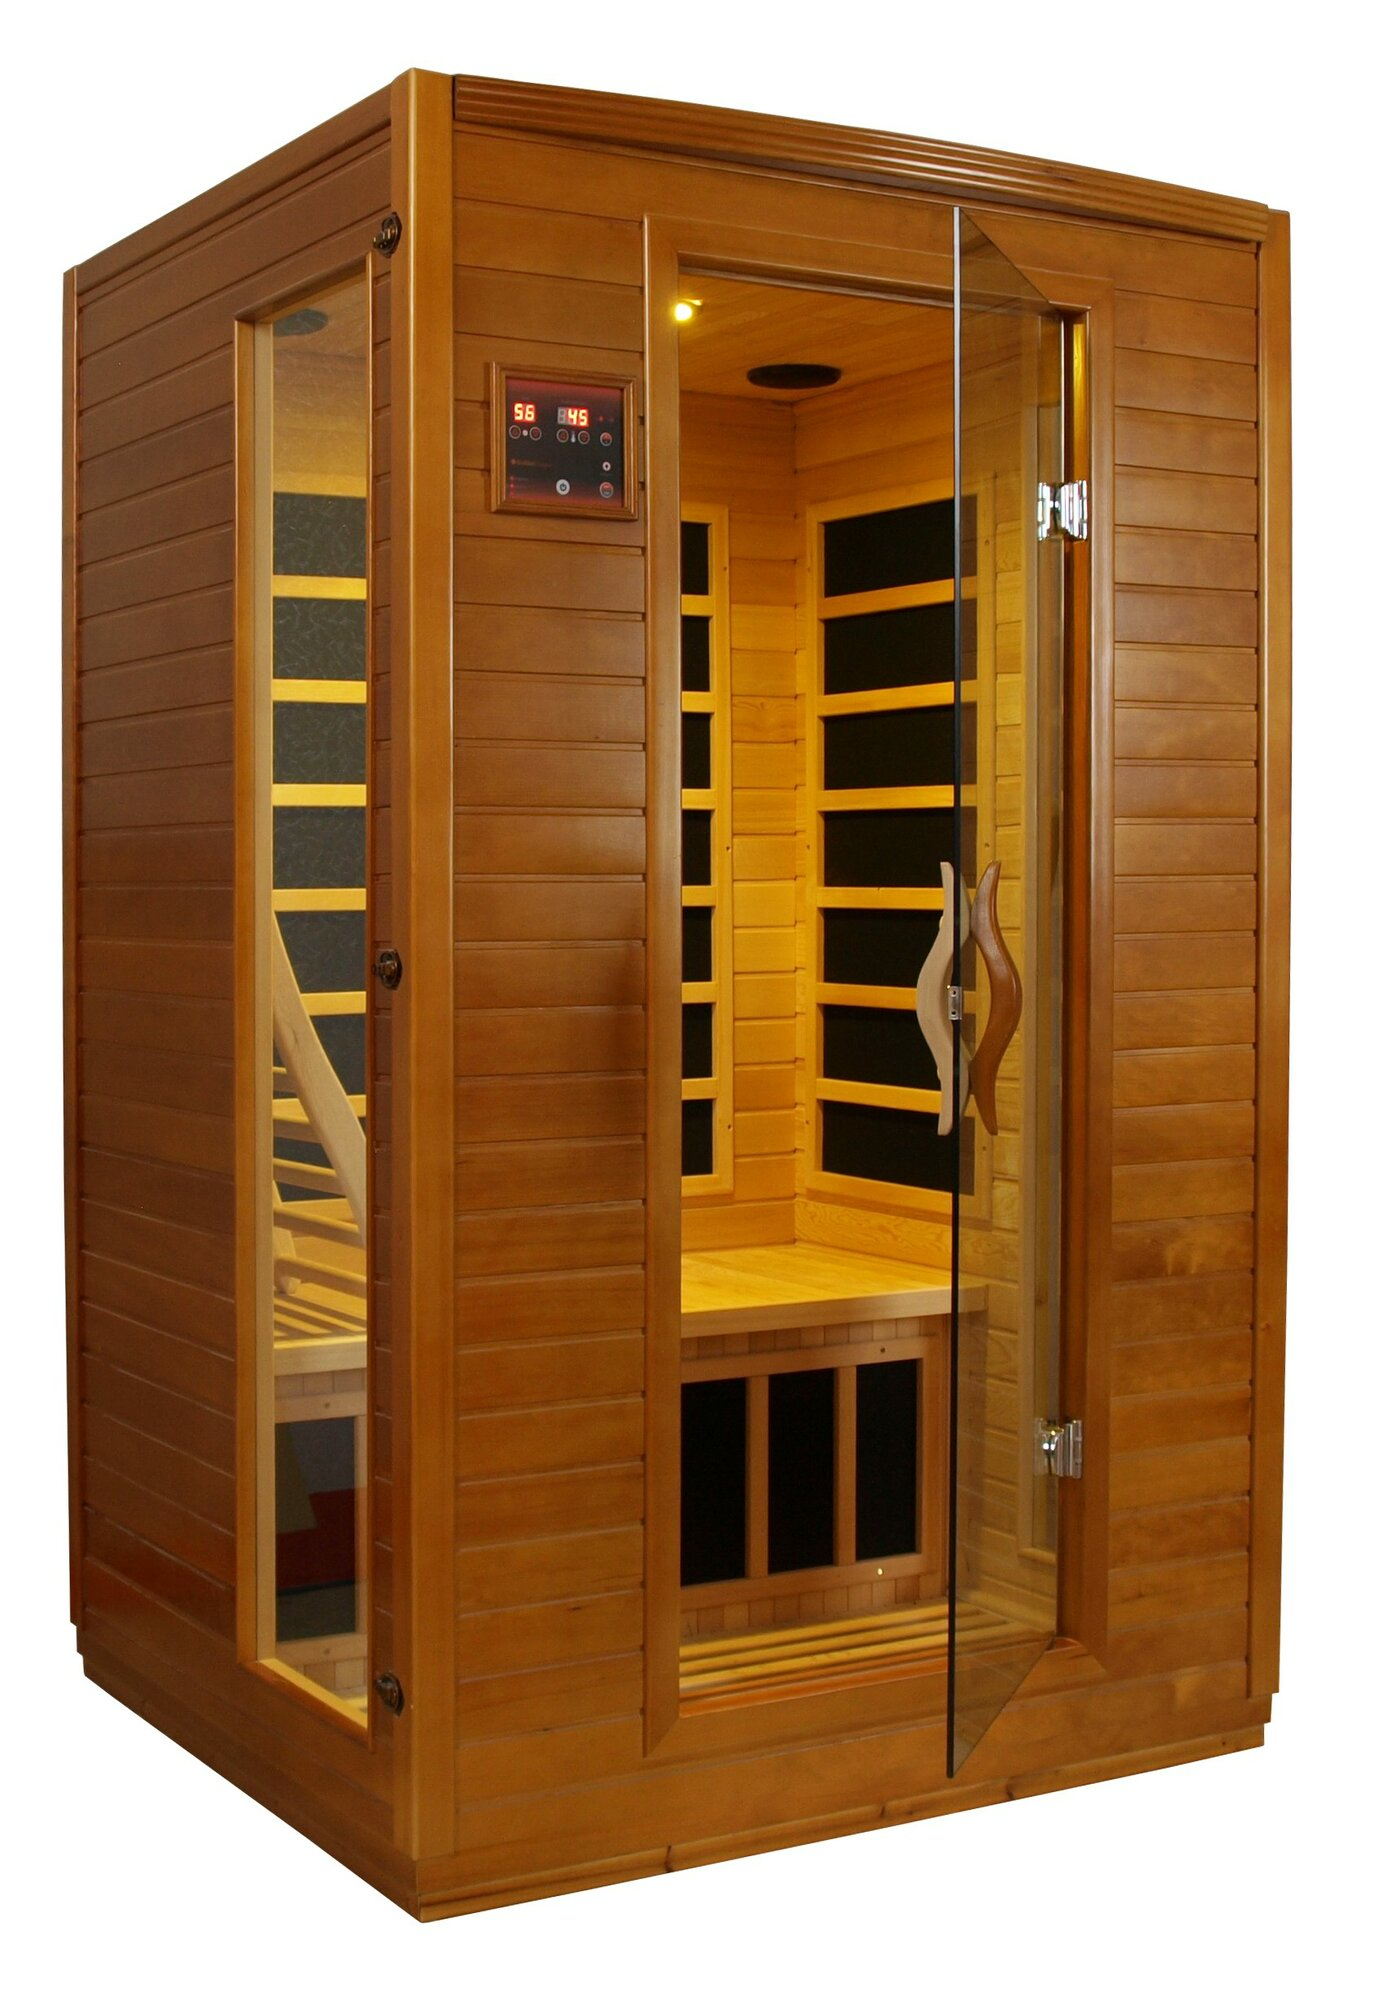 Infrared Sauna With Salt Wall In Nh Hotel Zandvoort The: Dynamic Infrared Luxury 2 Person IR Carbon FAR Infrared